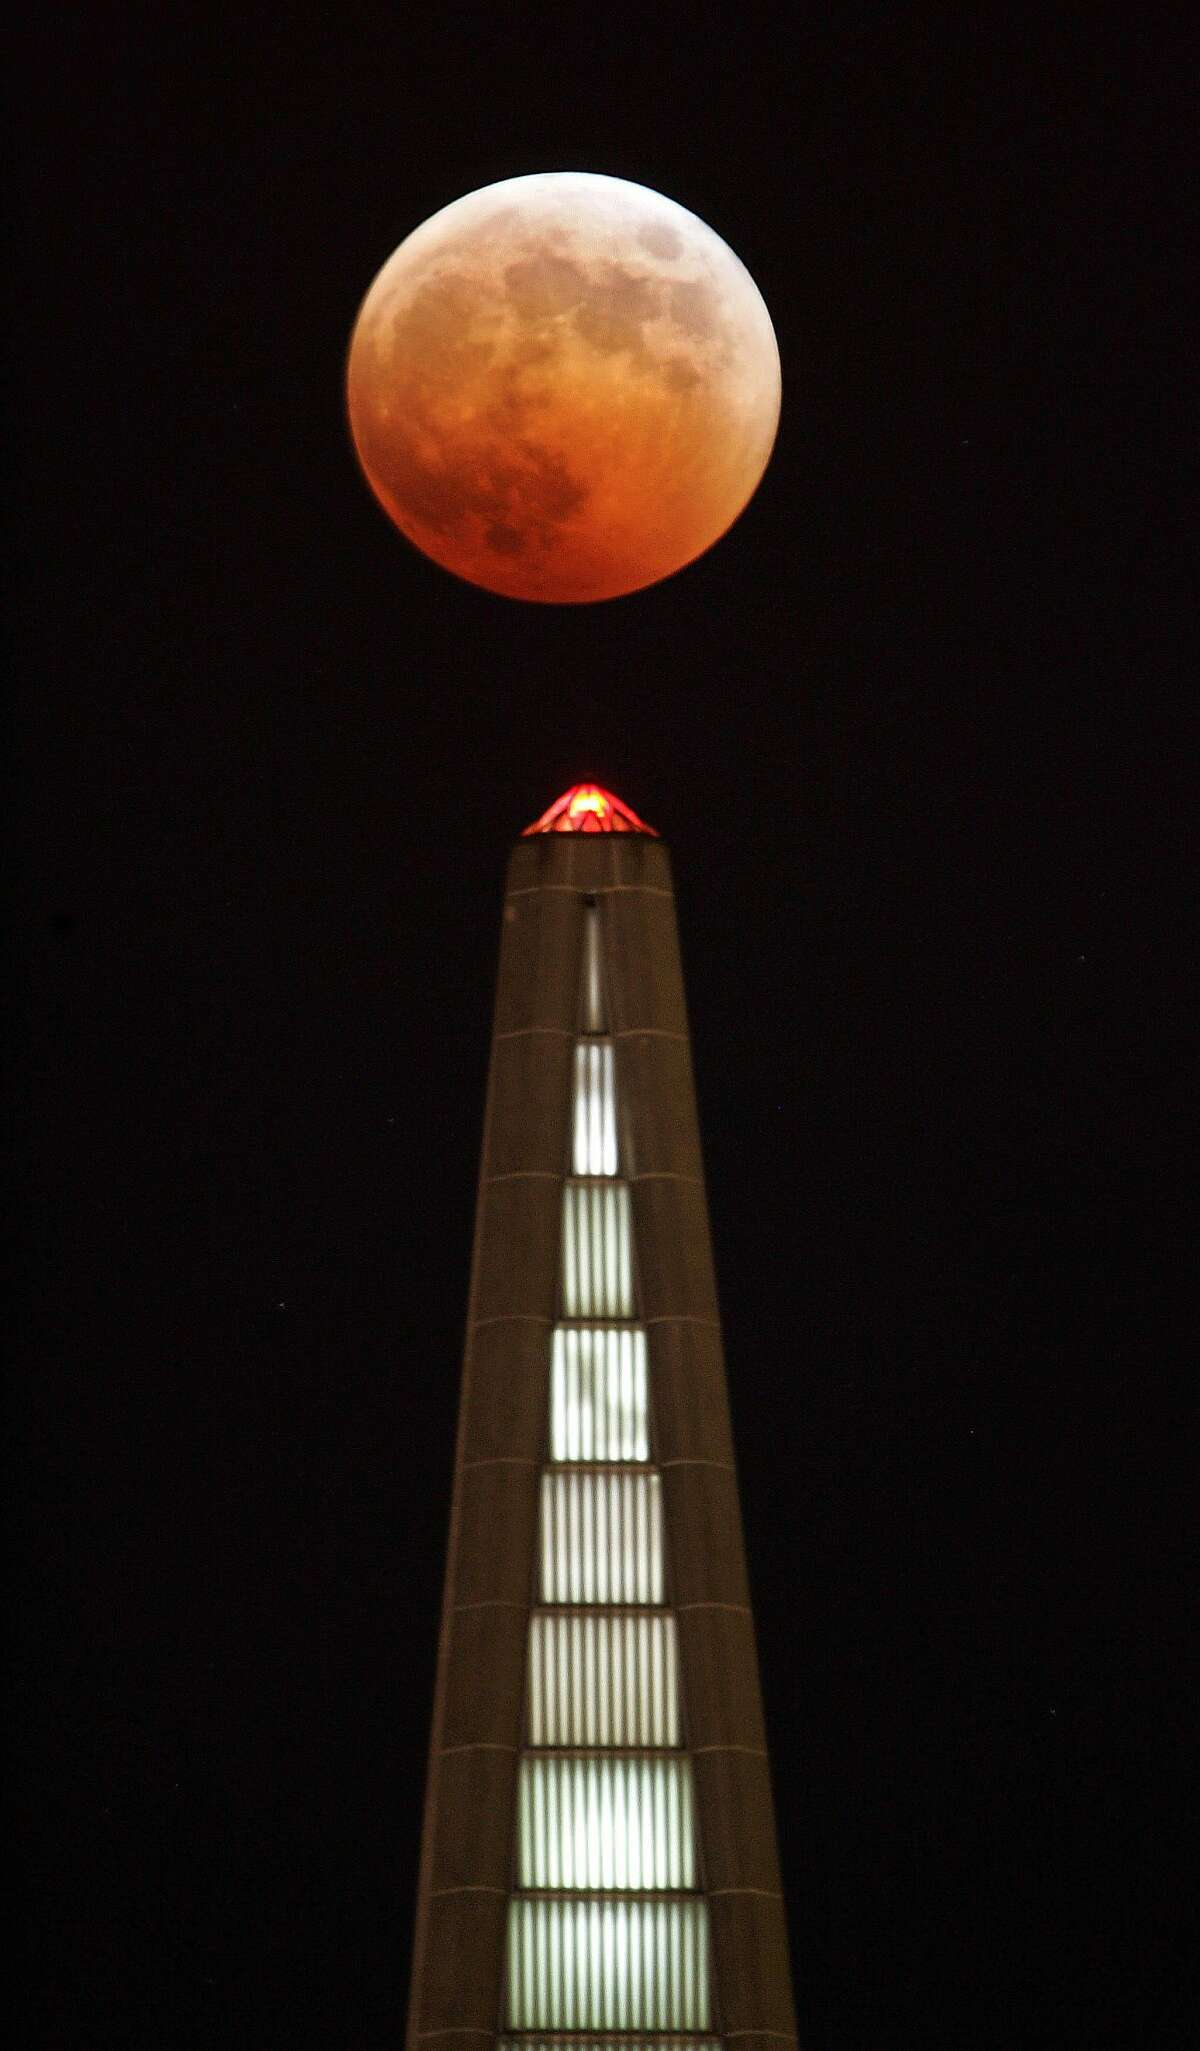 ECLIPSE_050_fl.jpg �A full eclipse of the moon, like an evil pumpkin, tops San Francisco Transamerica Pyramid Wednesday evening 10/27. The partial phase of the eclipse started 6:14 p.m., just as the full moon is rising from the east bay hills. Totality began at 7:23 p.m., when the moon, blood- red was tucked completely within Earth's shadow. The next total eclipse in the Bay Area can be viewed in the wee hours of the night August 28, 2007. 10/27/04 San Francisco CA Frederic Larson The San Francisco Chronicle Ran on: 10-28-2004 Photo caption Dummy text goes here. Dummy text goes here. Dummy text goes here. Dummy text goes here. Dummy text goes here. Dummy text goes here. Dummy text goes here. Dummy text goes here. Ran on: 10-28-2004 Photo caption Dummy text goes here. Dummy text goes here. Dummy text goes here. Dummy text goes here. Dummy text goes here. Dummy text goes here. Dummy text goes here. Dummy text goes here. Ran on: 10-13-2005